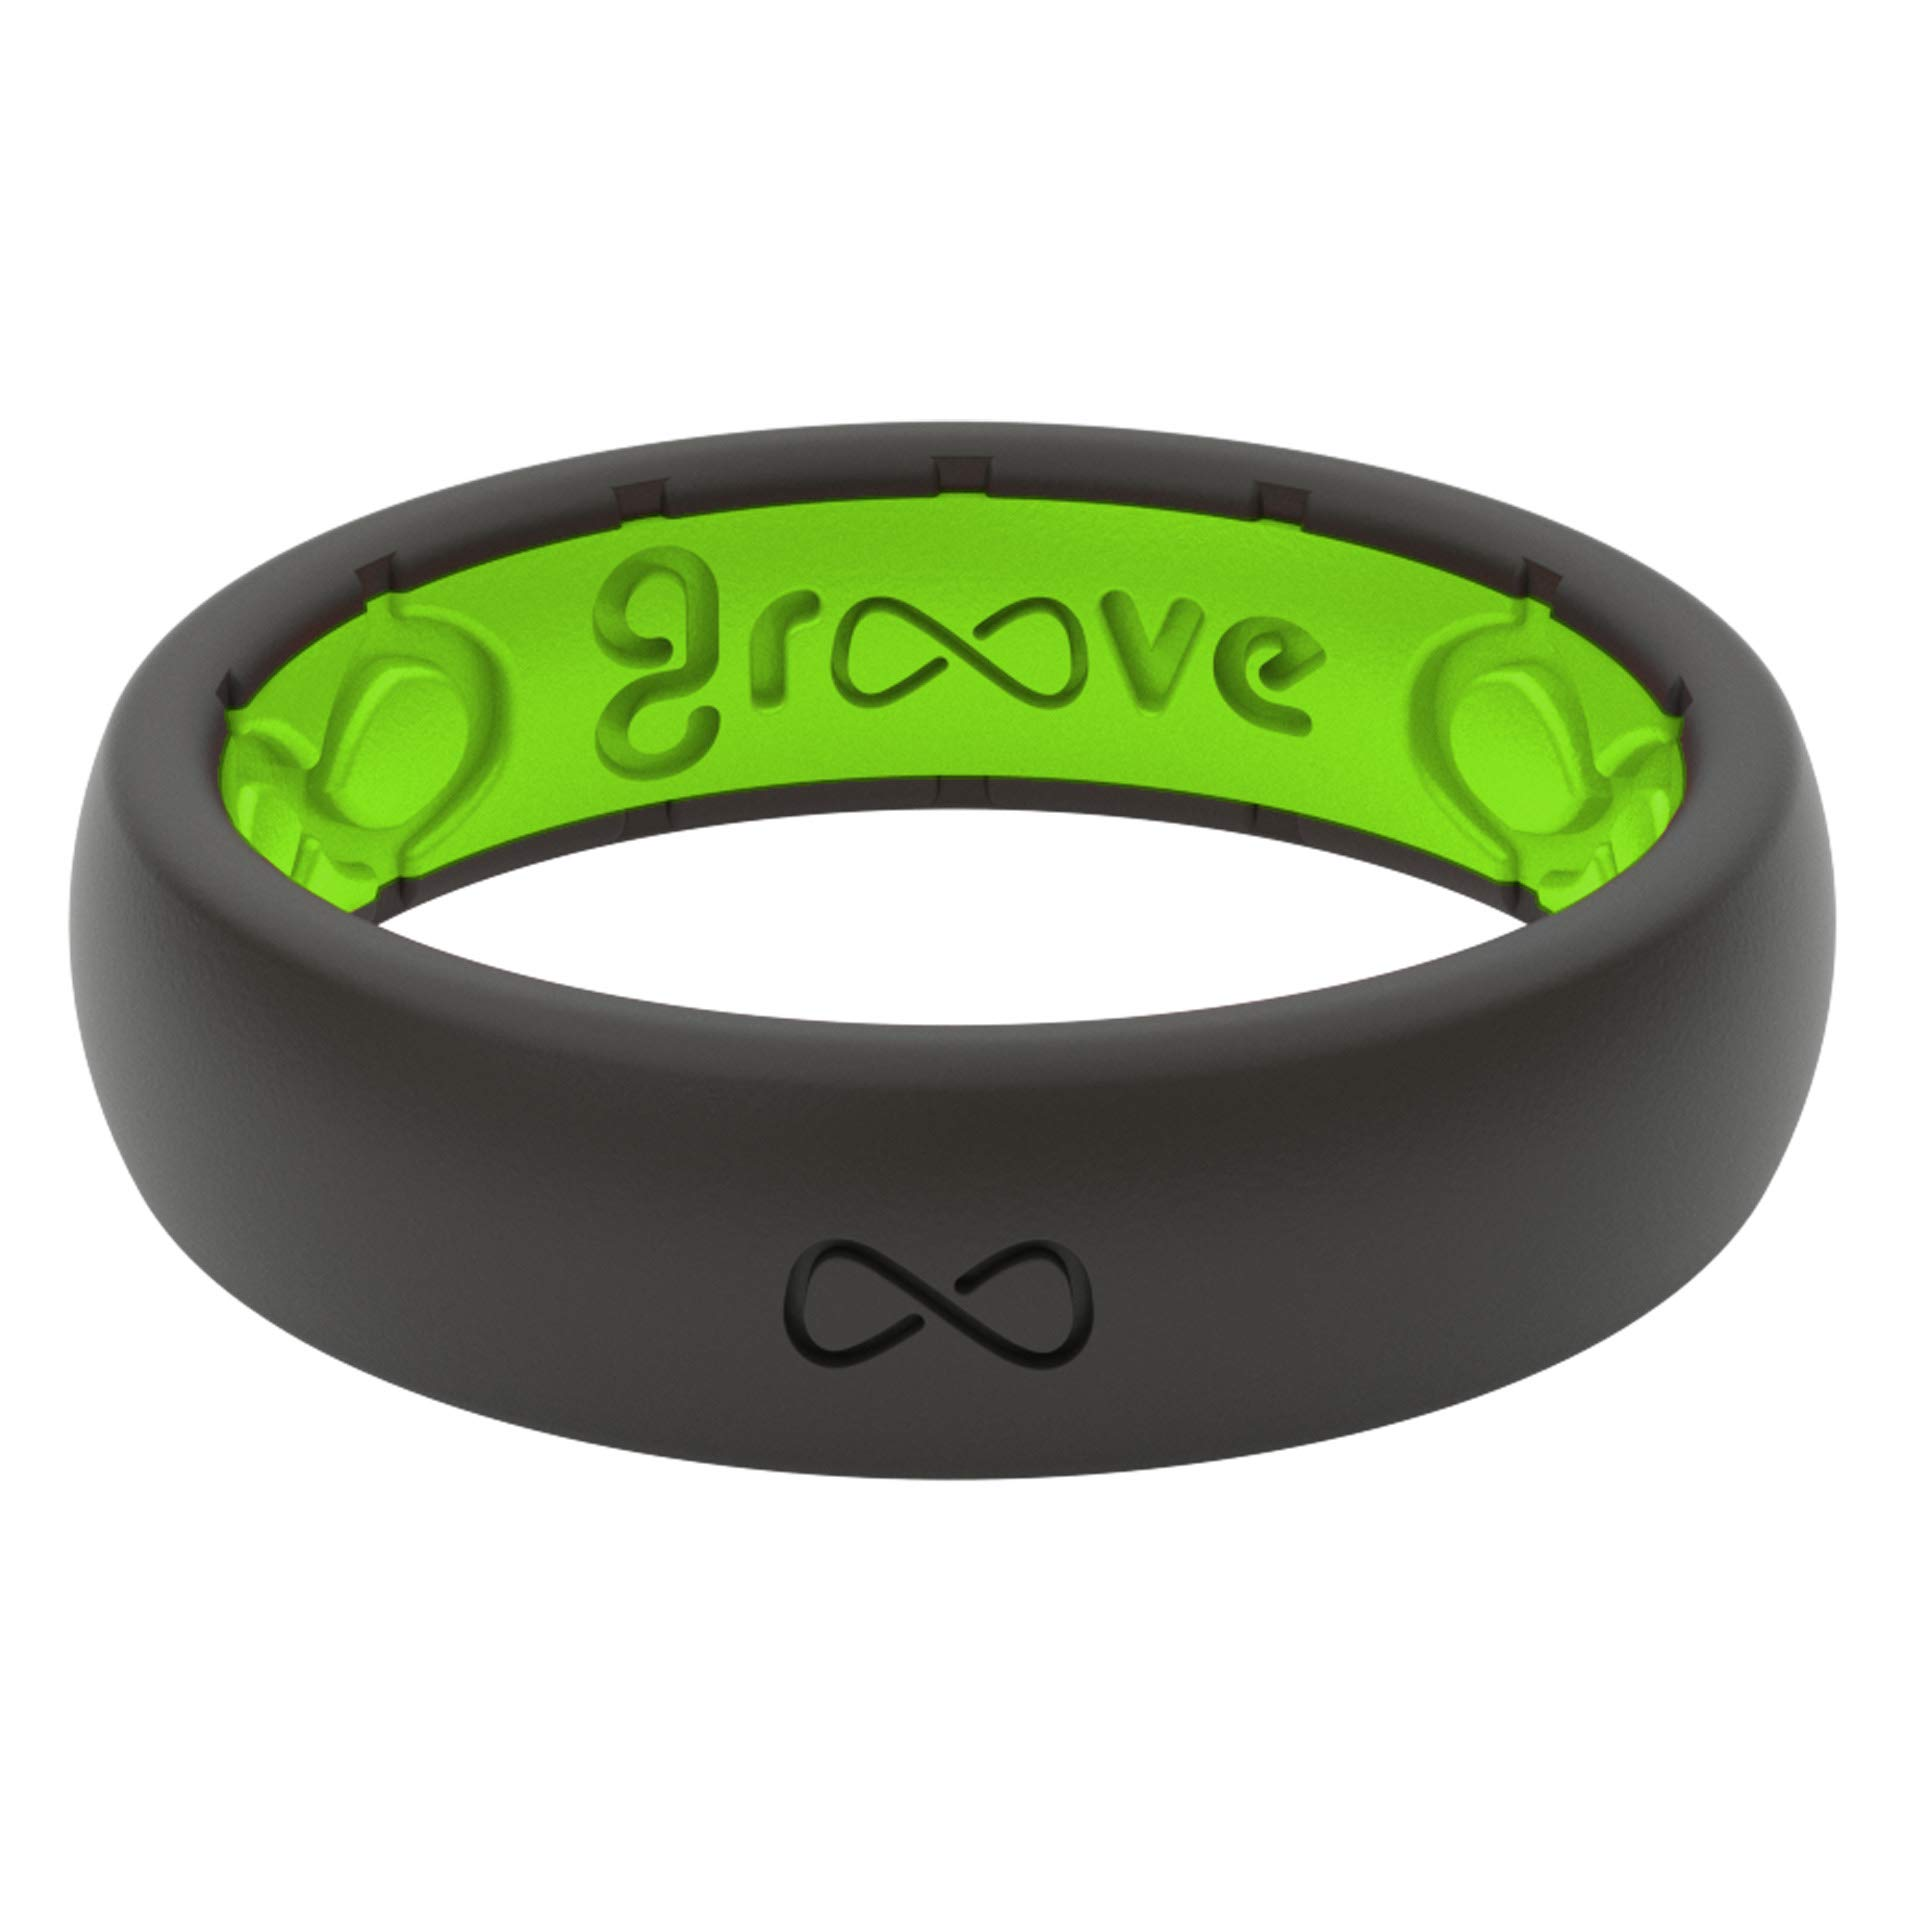 Groove Life - Silicone Ring for Men and for Women Wedding or Engagement Rubber Band with, Breathable Grooves, Comfort Fit, and Durability - Thin Solid Midnight Black/Green Size 4